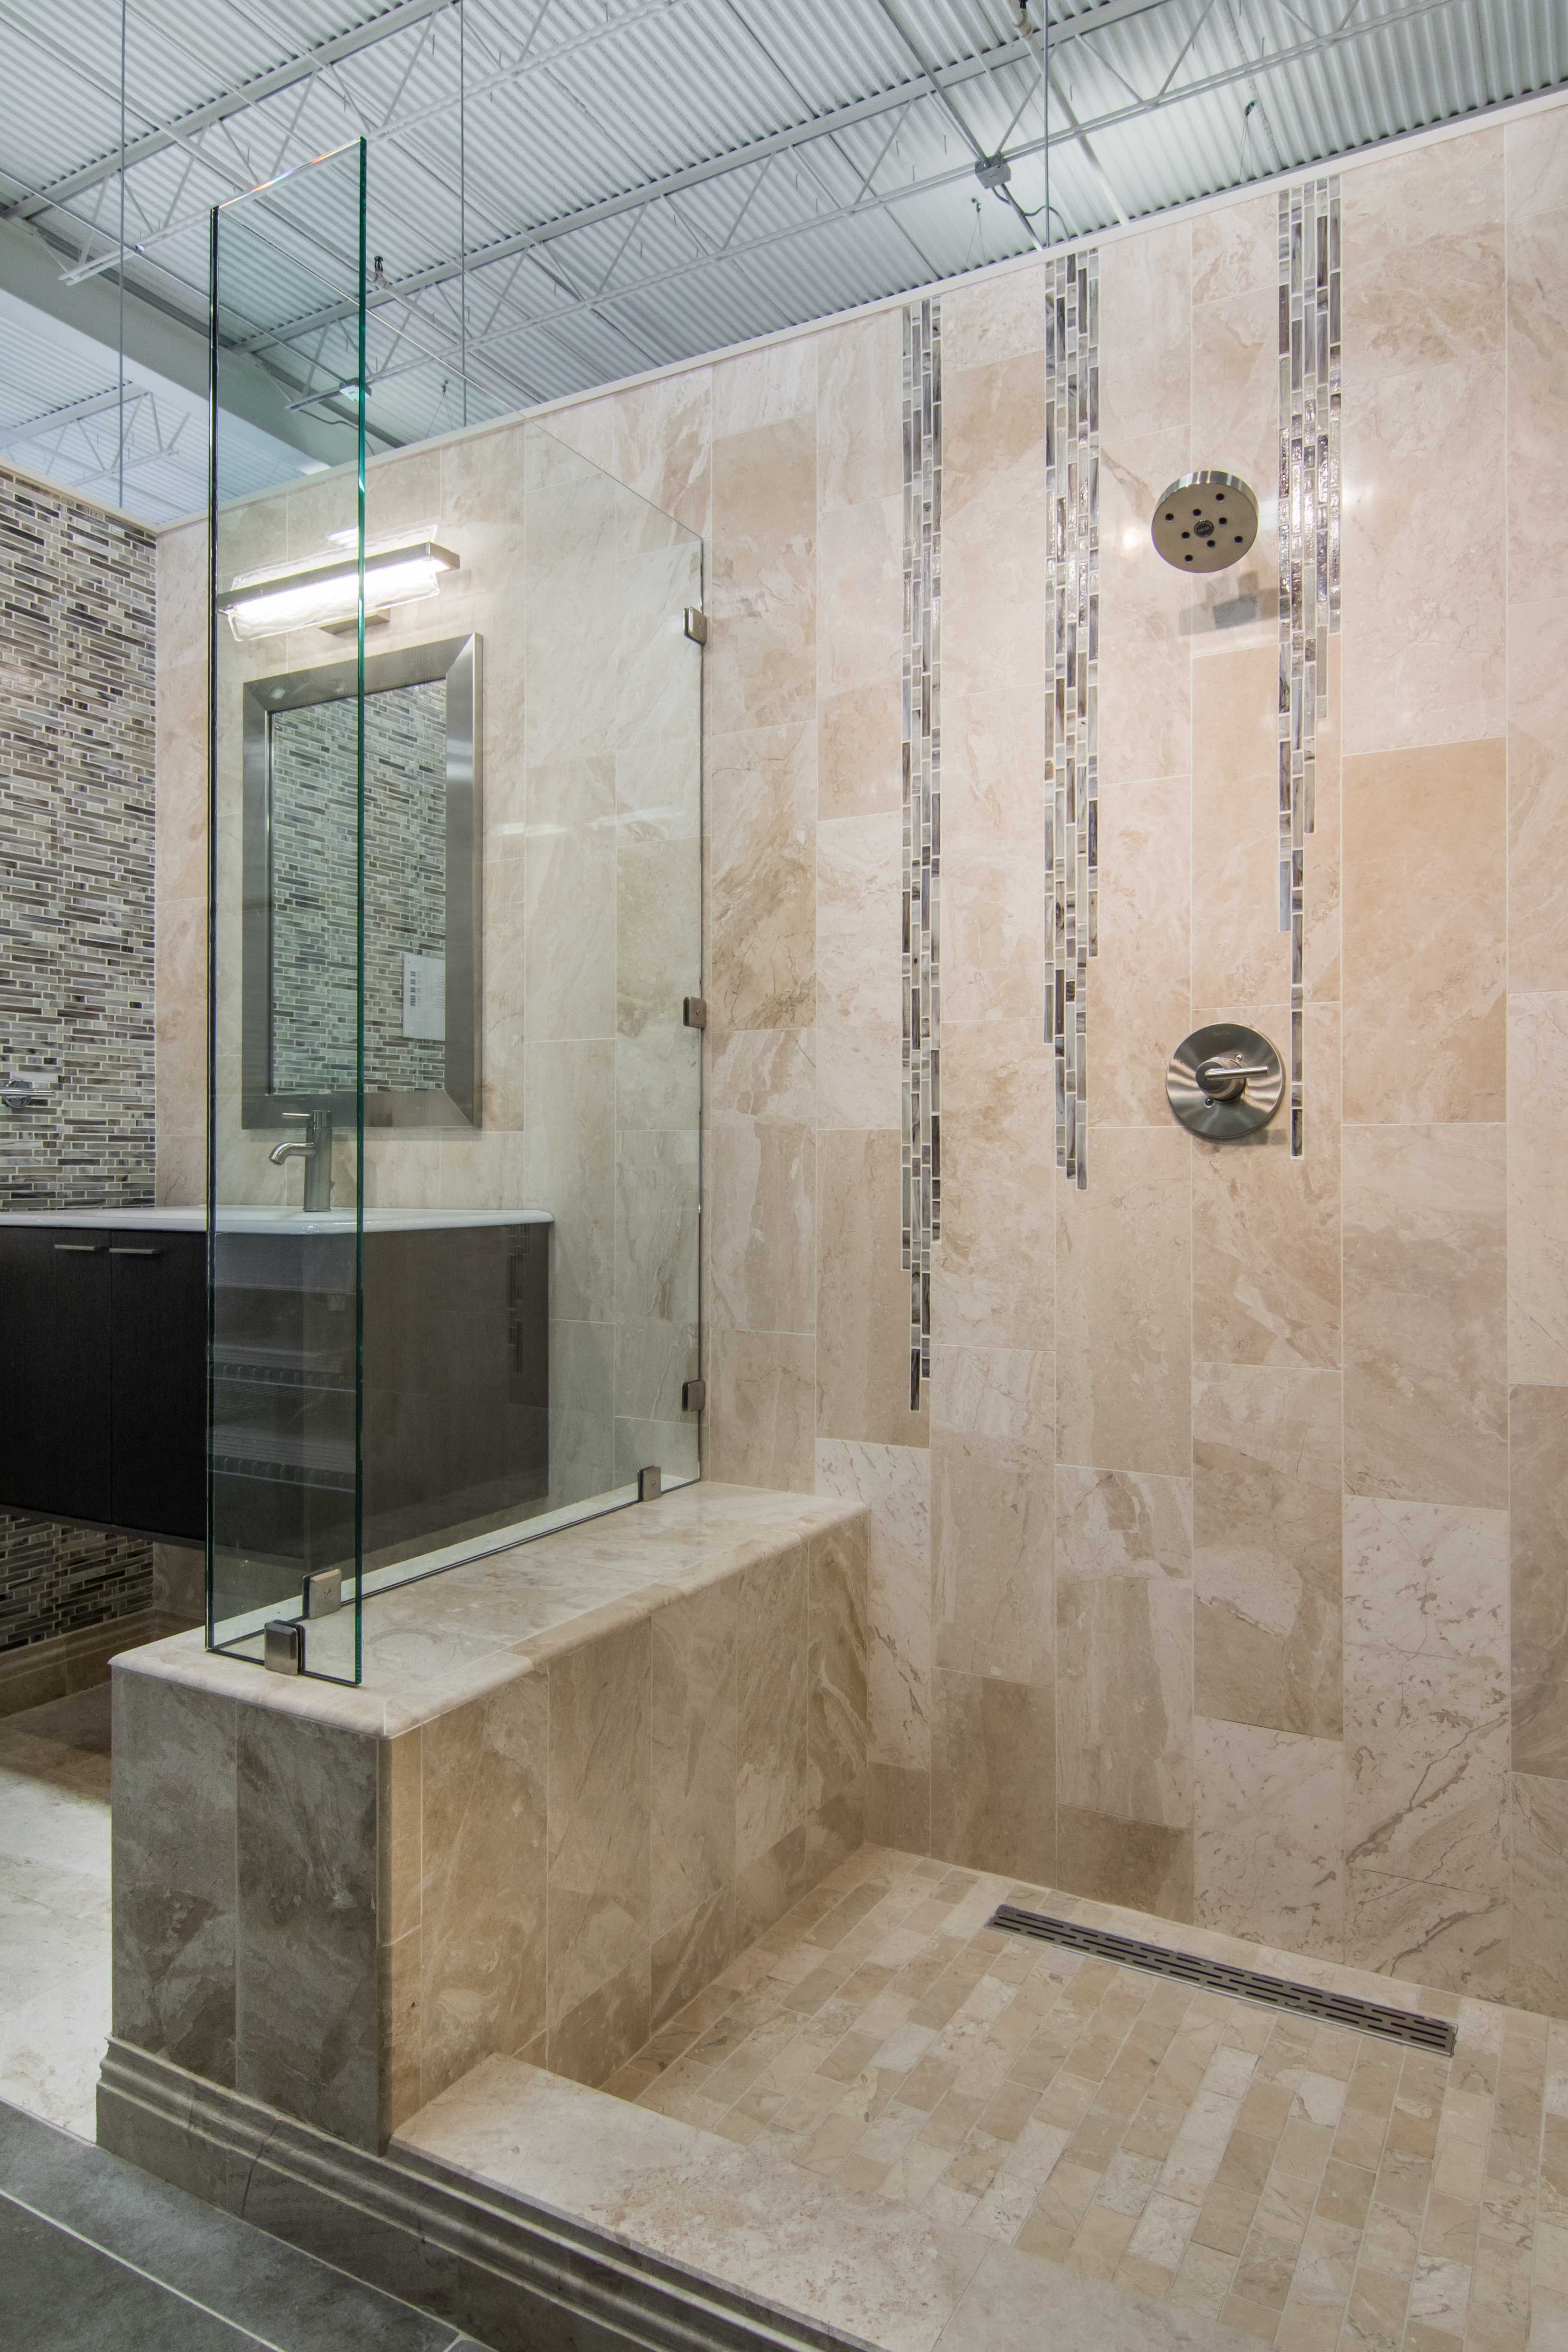 Polished marble tiles bathroom - Bathroom Shower Marble Tile Queen Beige Polished Marble Floor Tile 12 X 24 In